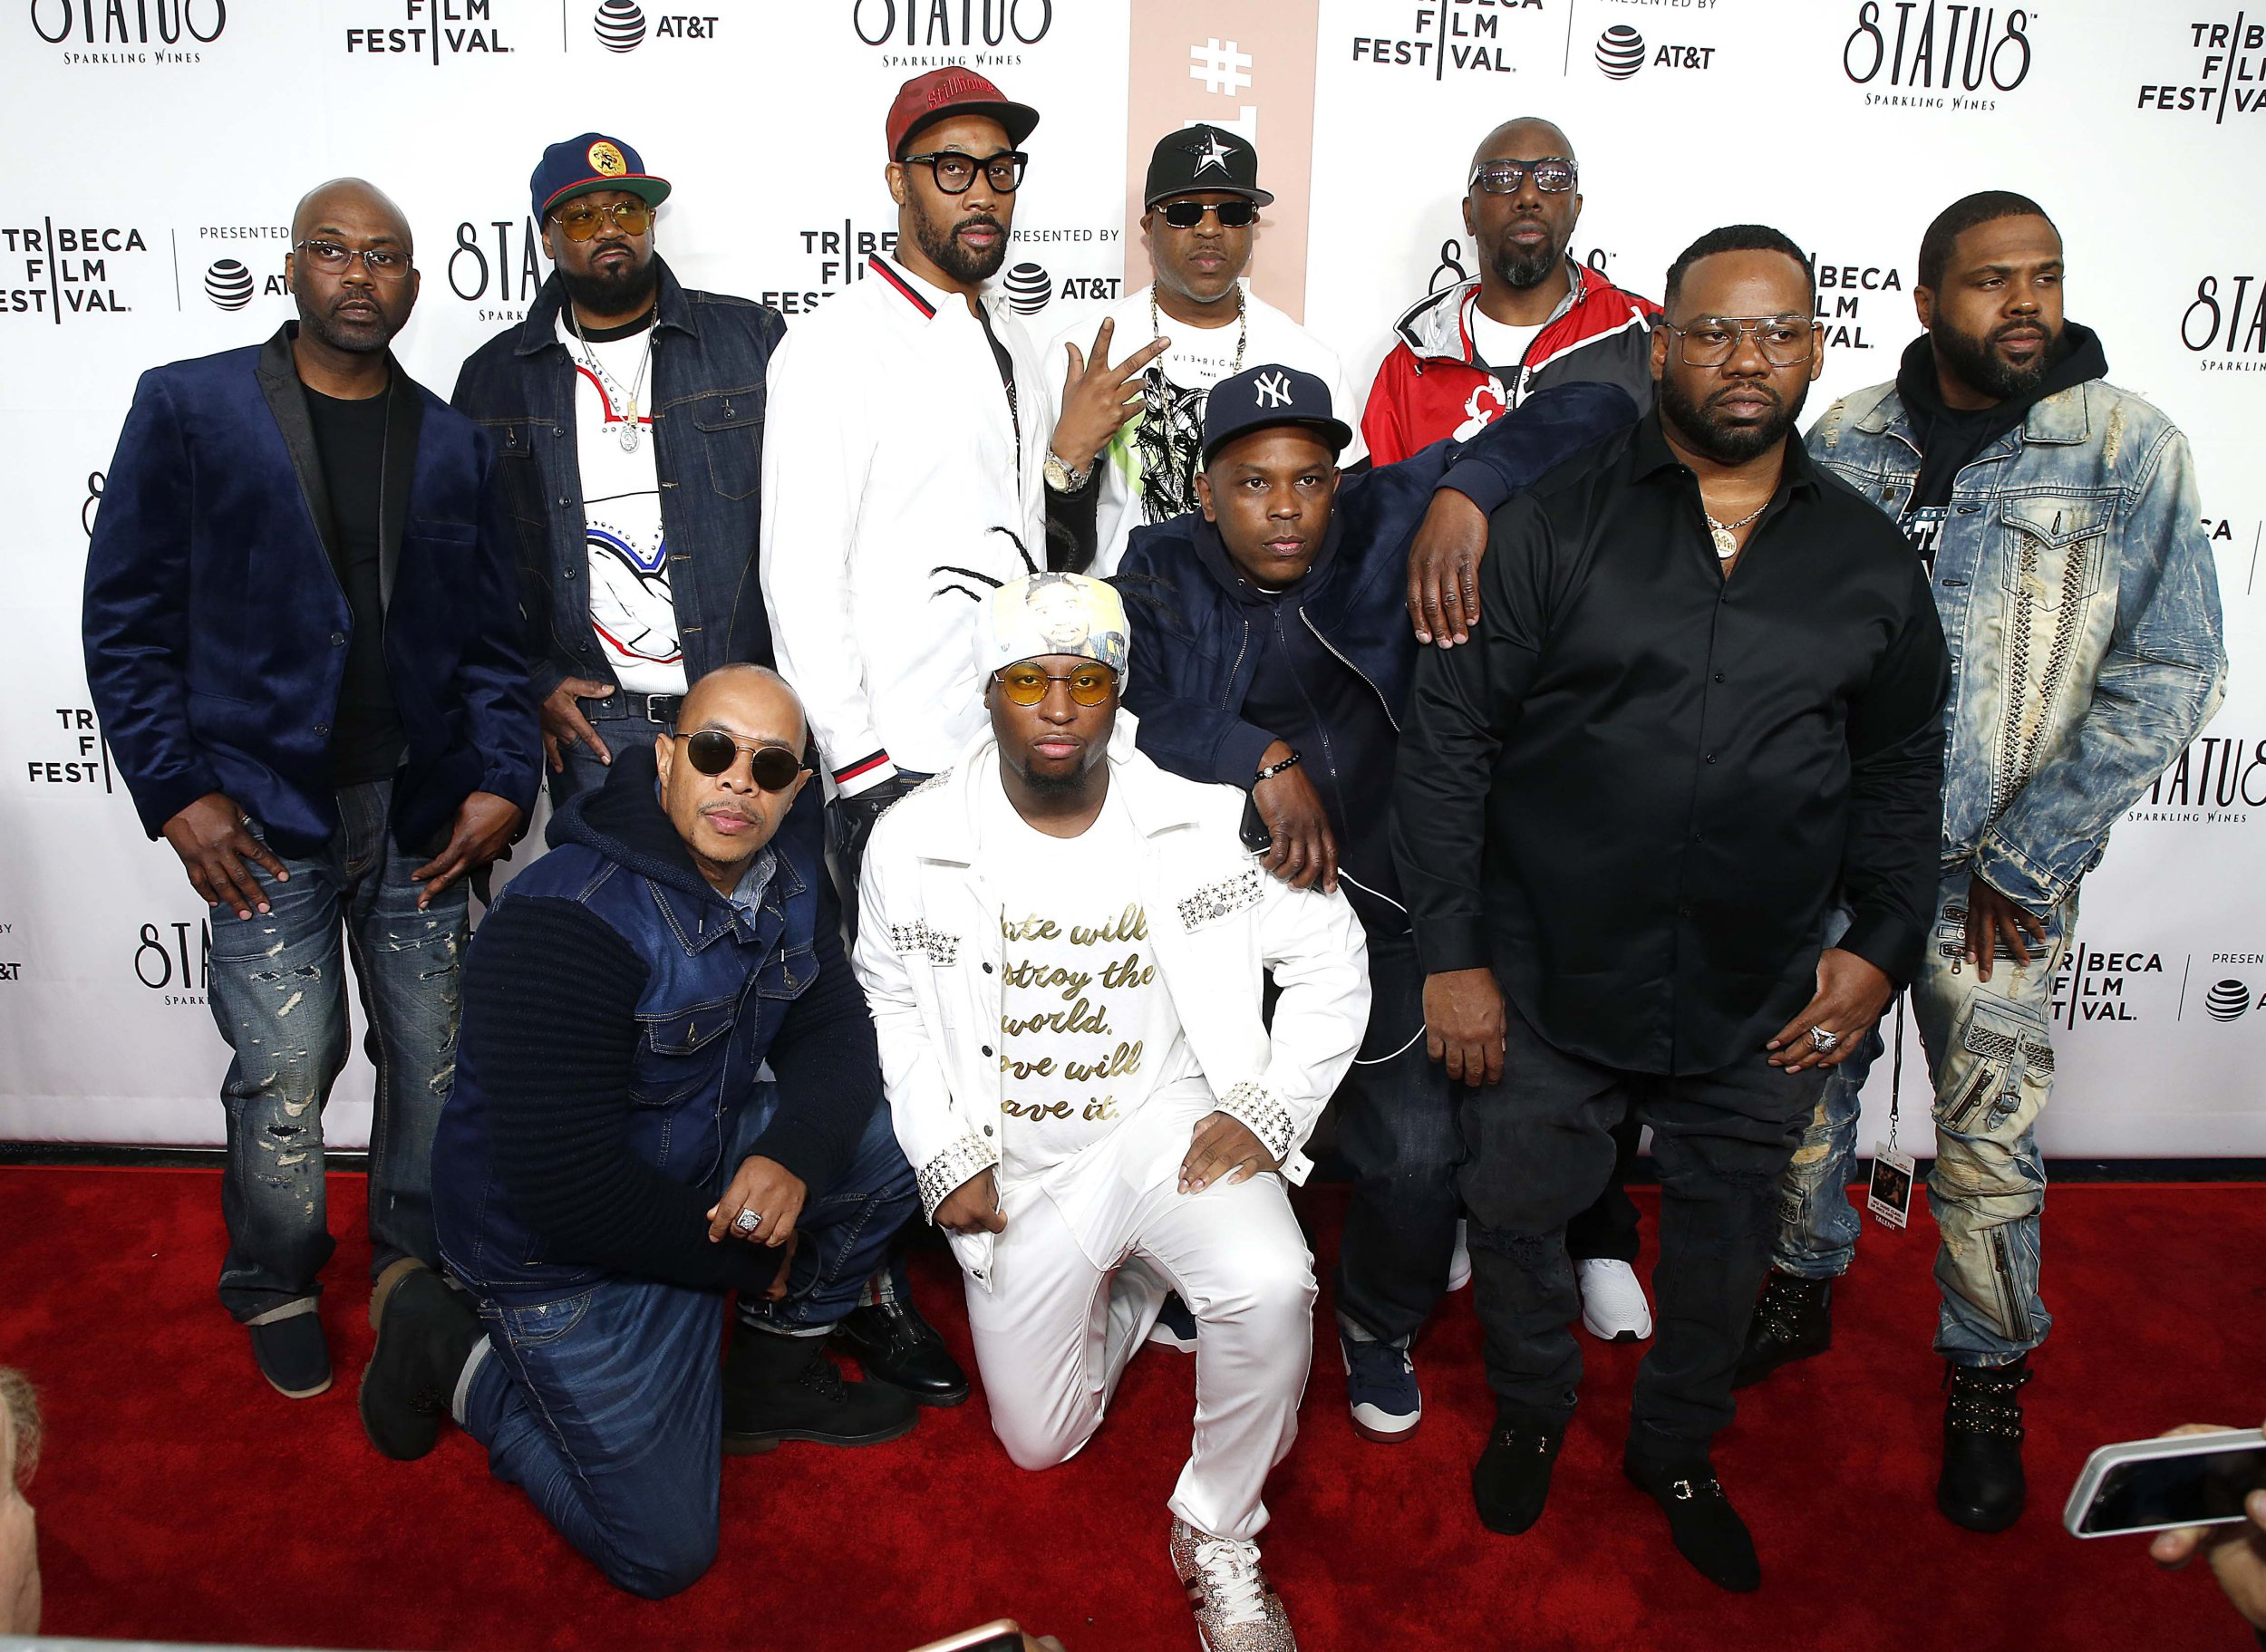 Wu-Tang Clan turn up in force for premiere of new documentary at Tribeca Film Festival